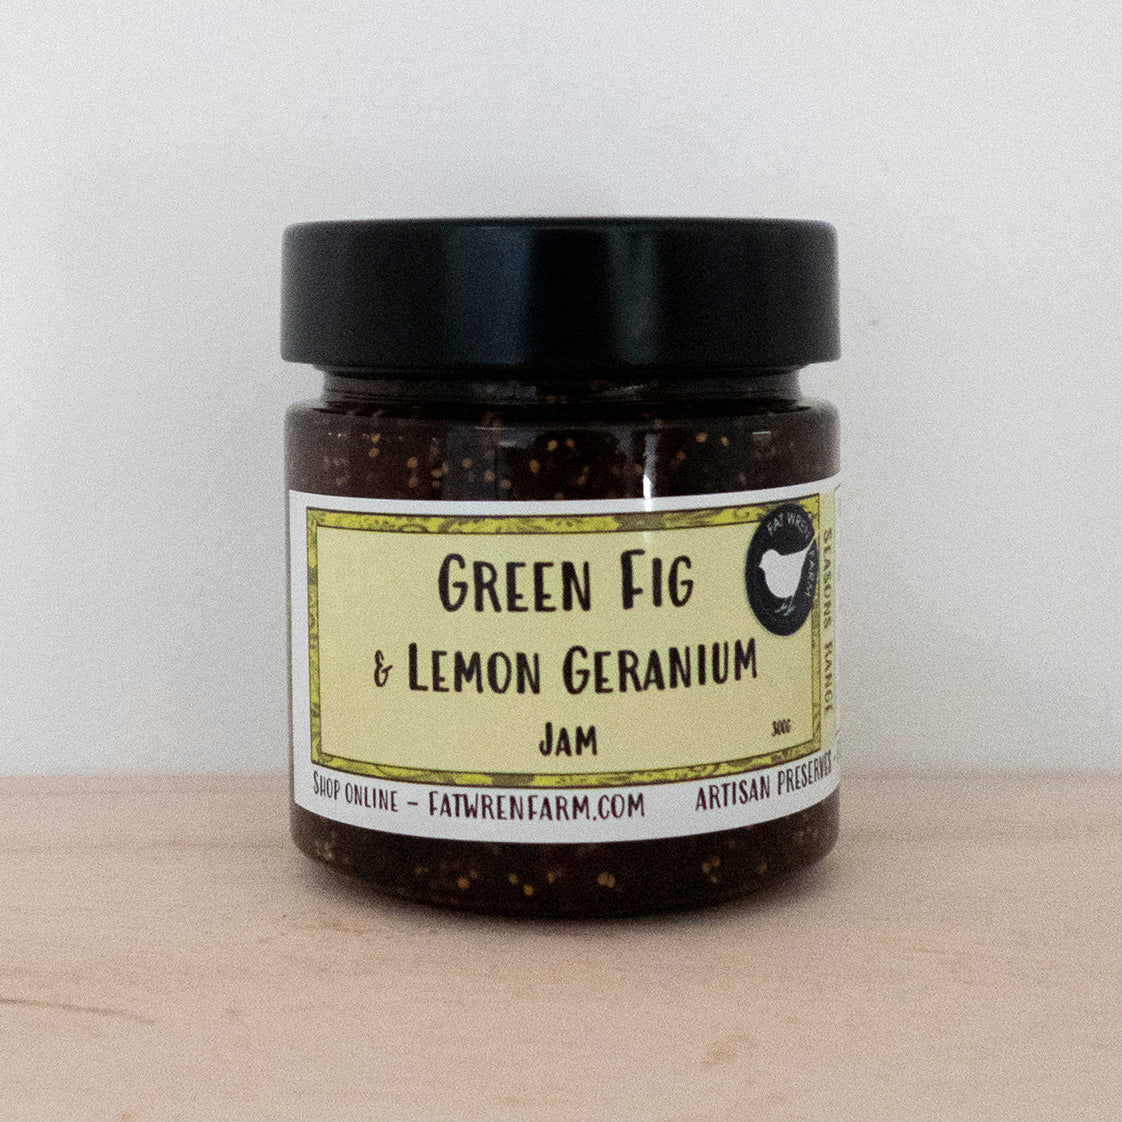 Green Fig & Lemon Geranium Jam